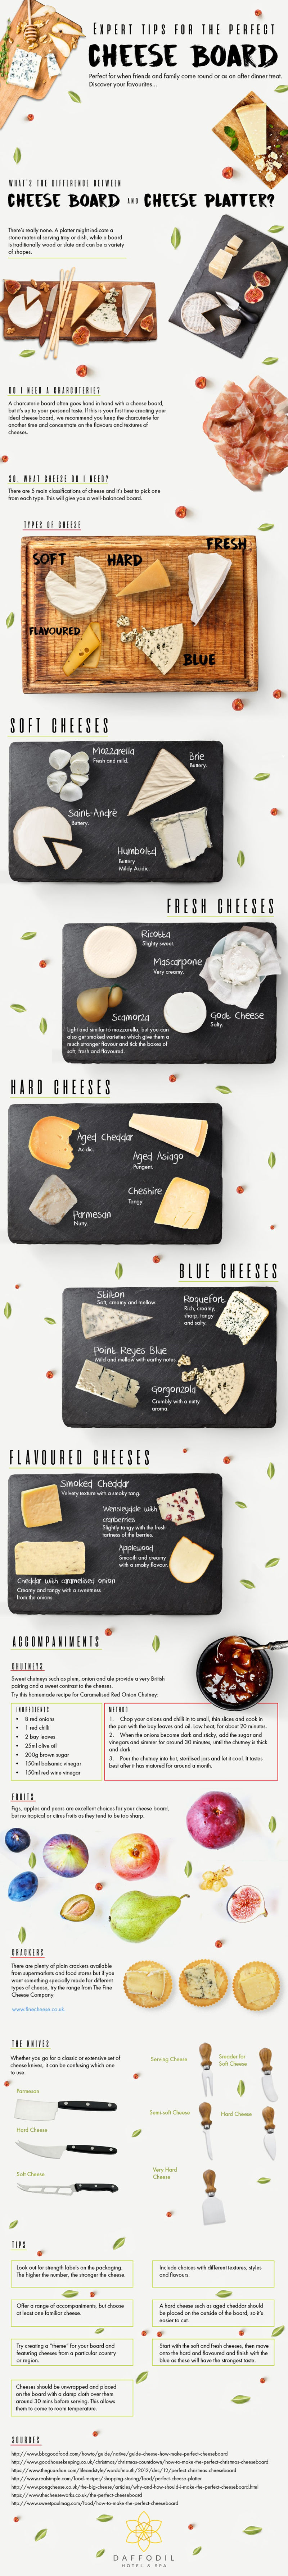 Perfect Cheese Board Infographic